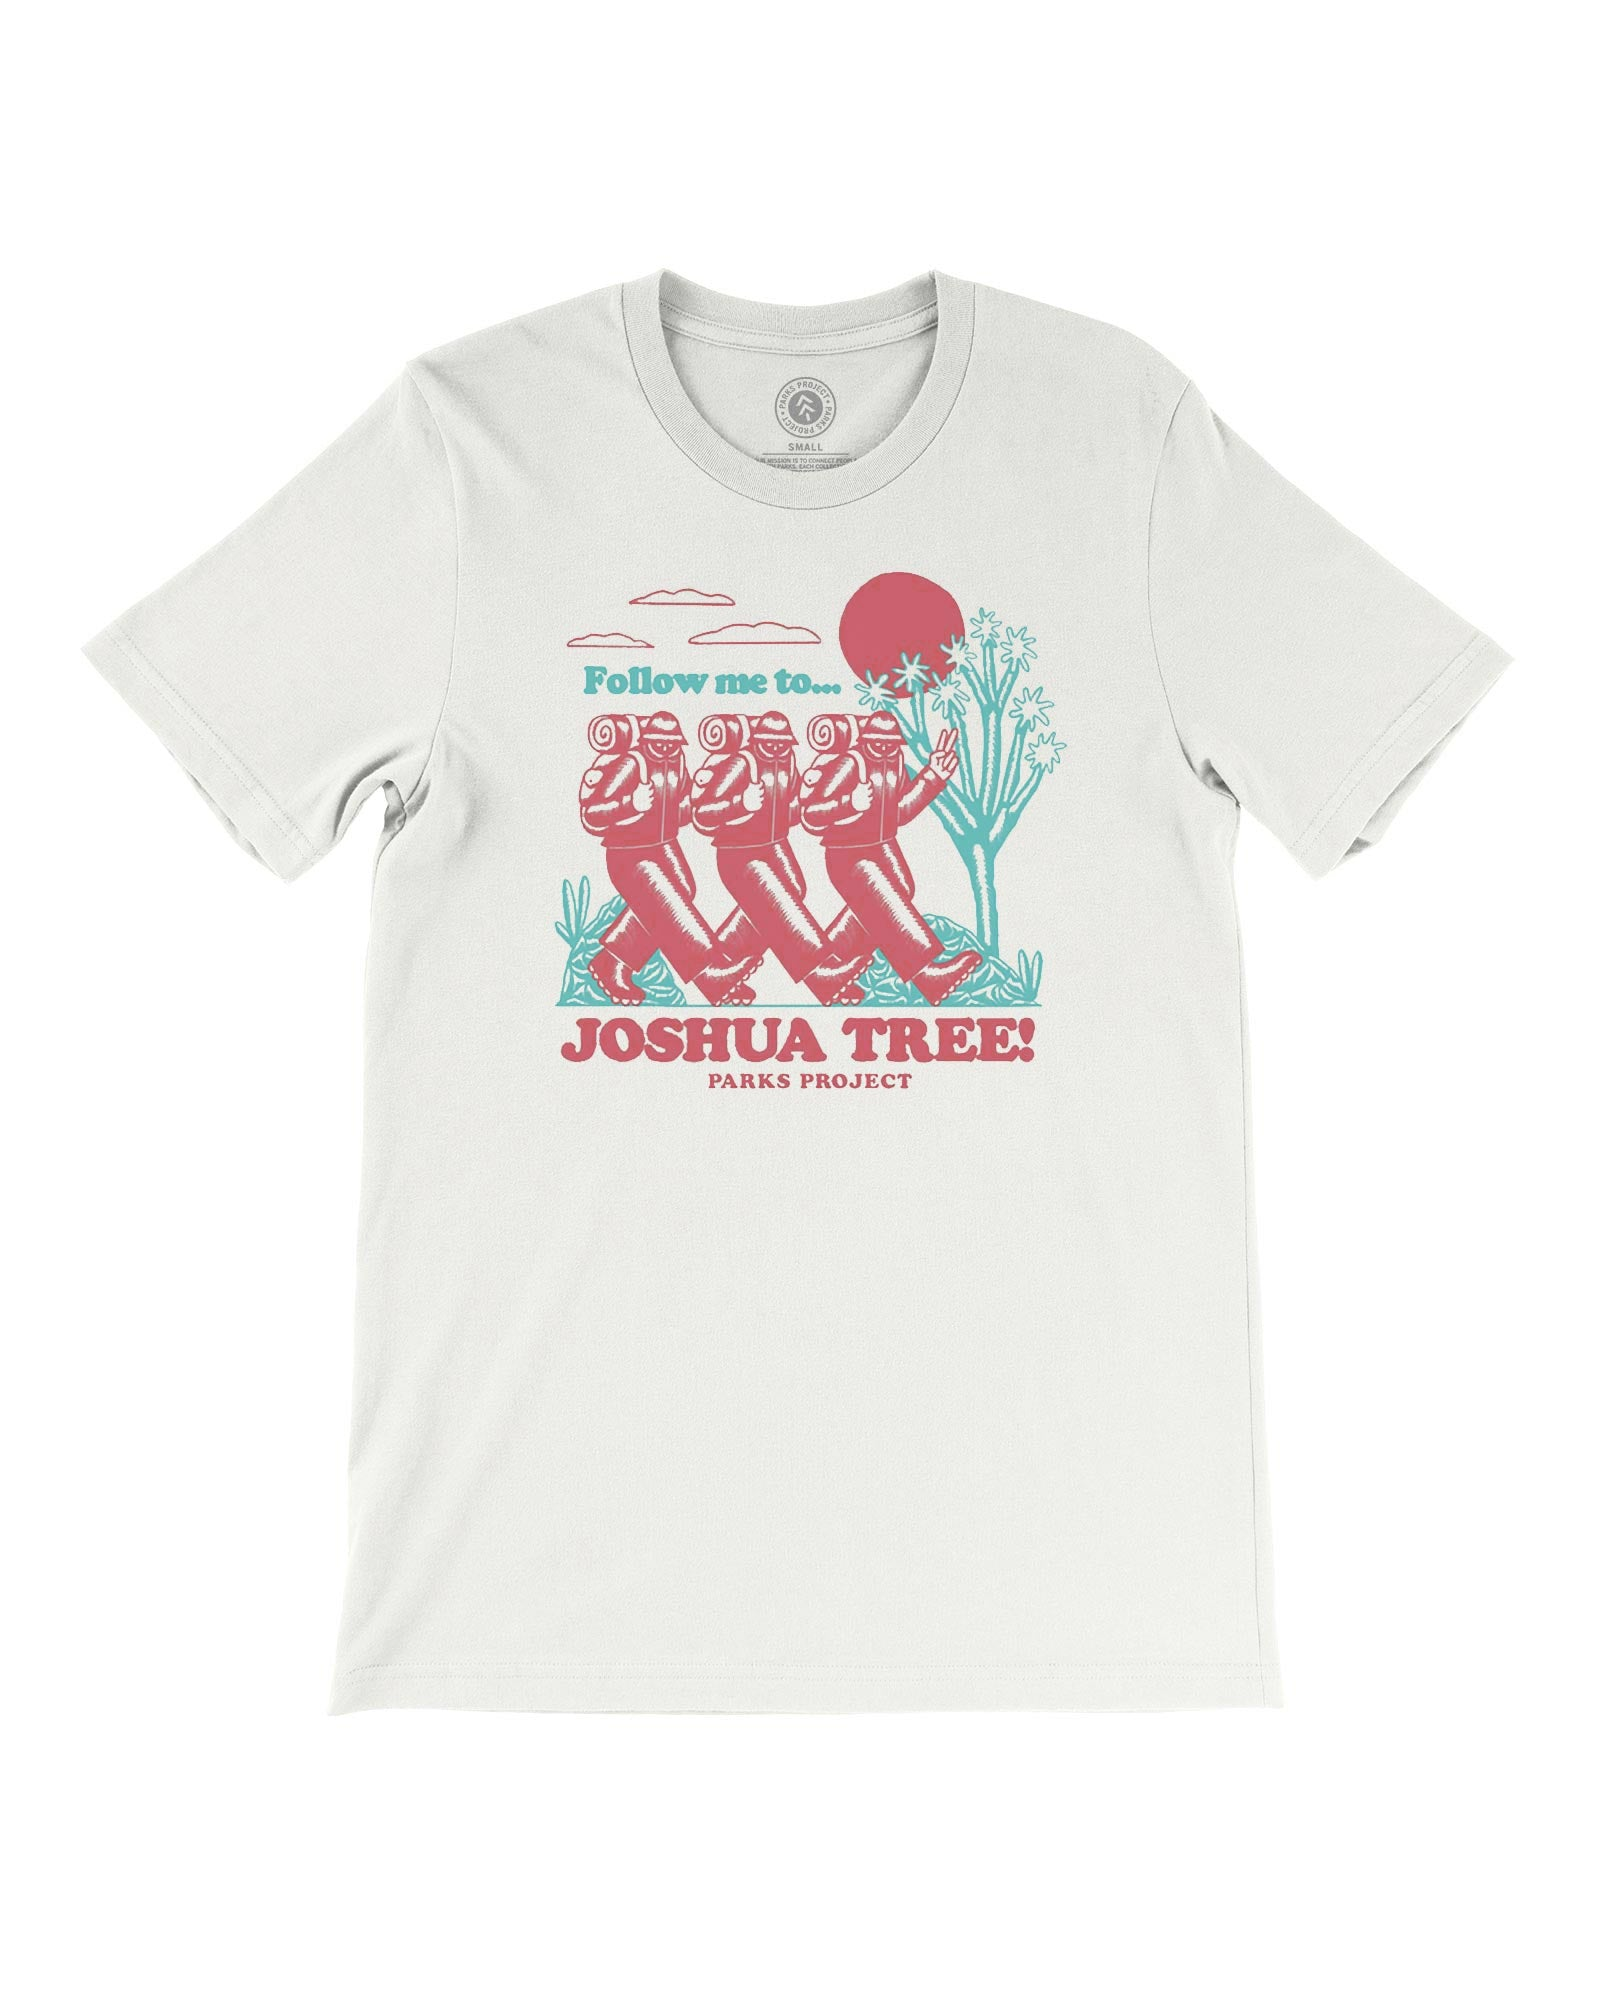 Joshua Tree Hiker Trio Tee | Parks Project | National Park Top